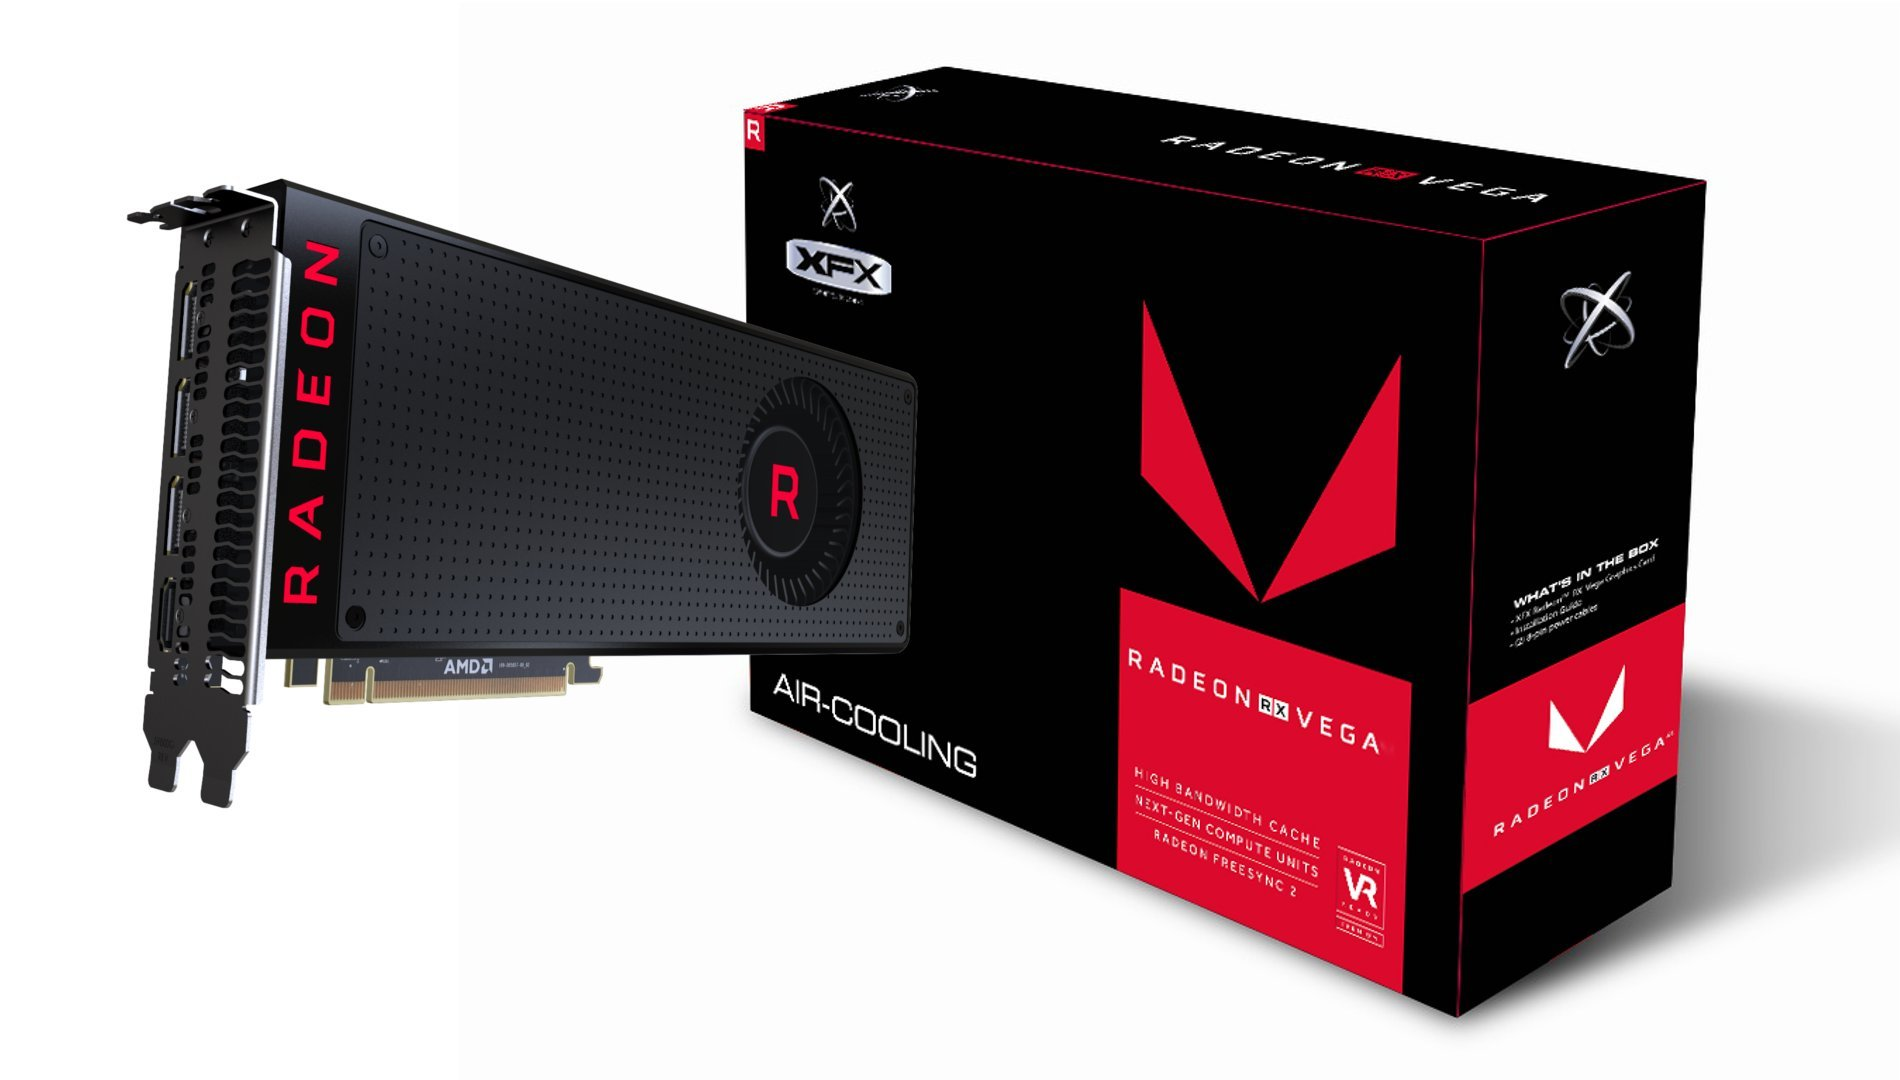 XFX Radeon Rx Vega 56 8GB 3xDP HDMI Graphic Cards RX-VEGMLBFX6 by XFX